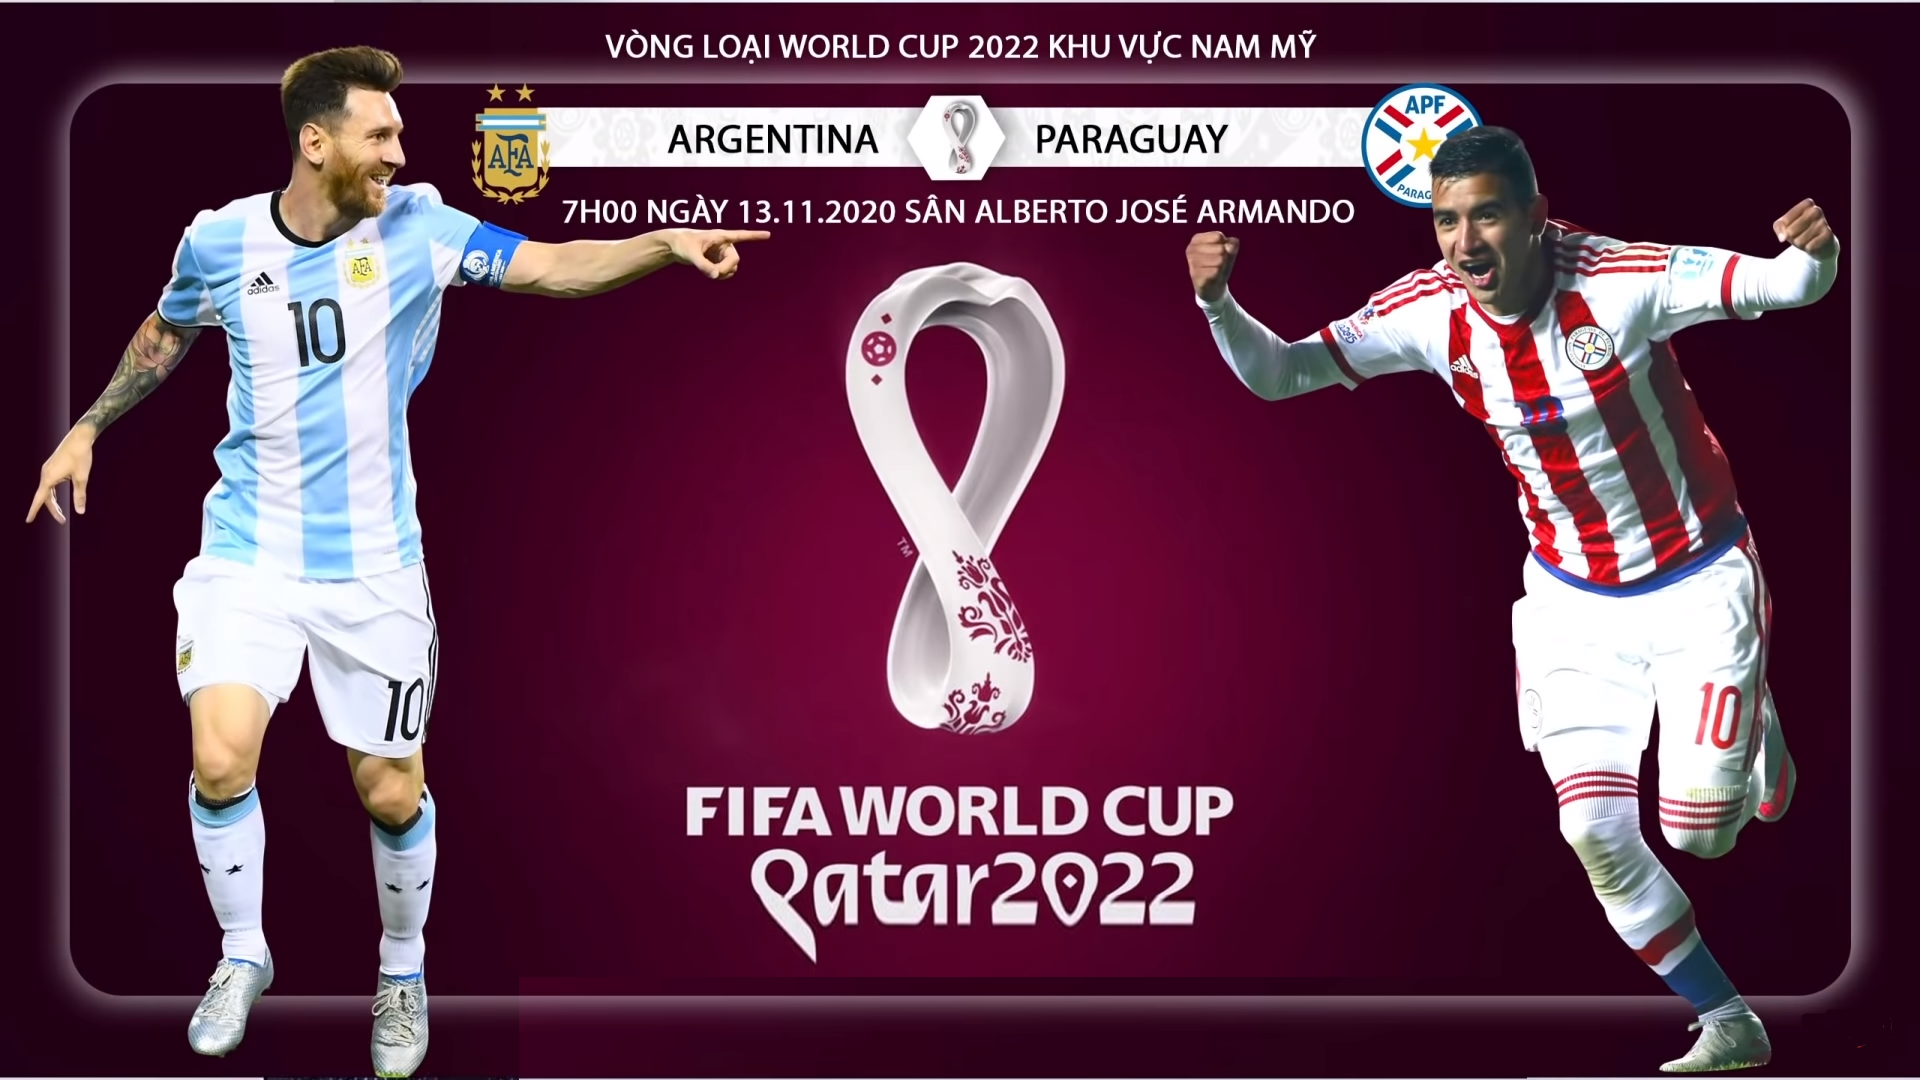 Link to watch live football Paraguay vs Argentina (6h00, 8/10) World Cup 2022 qualifiers 1